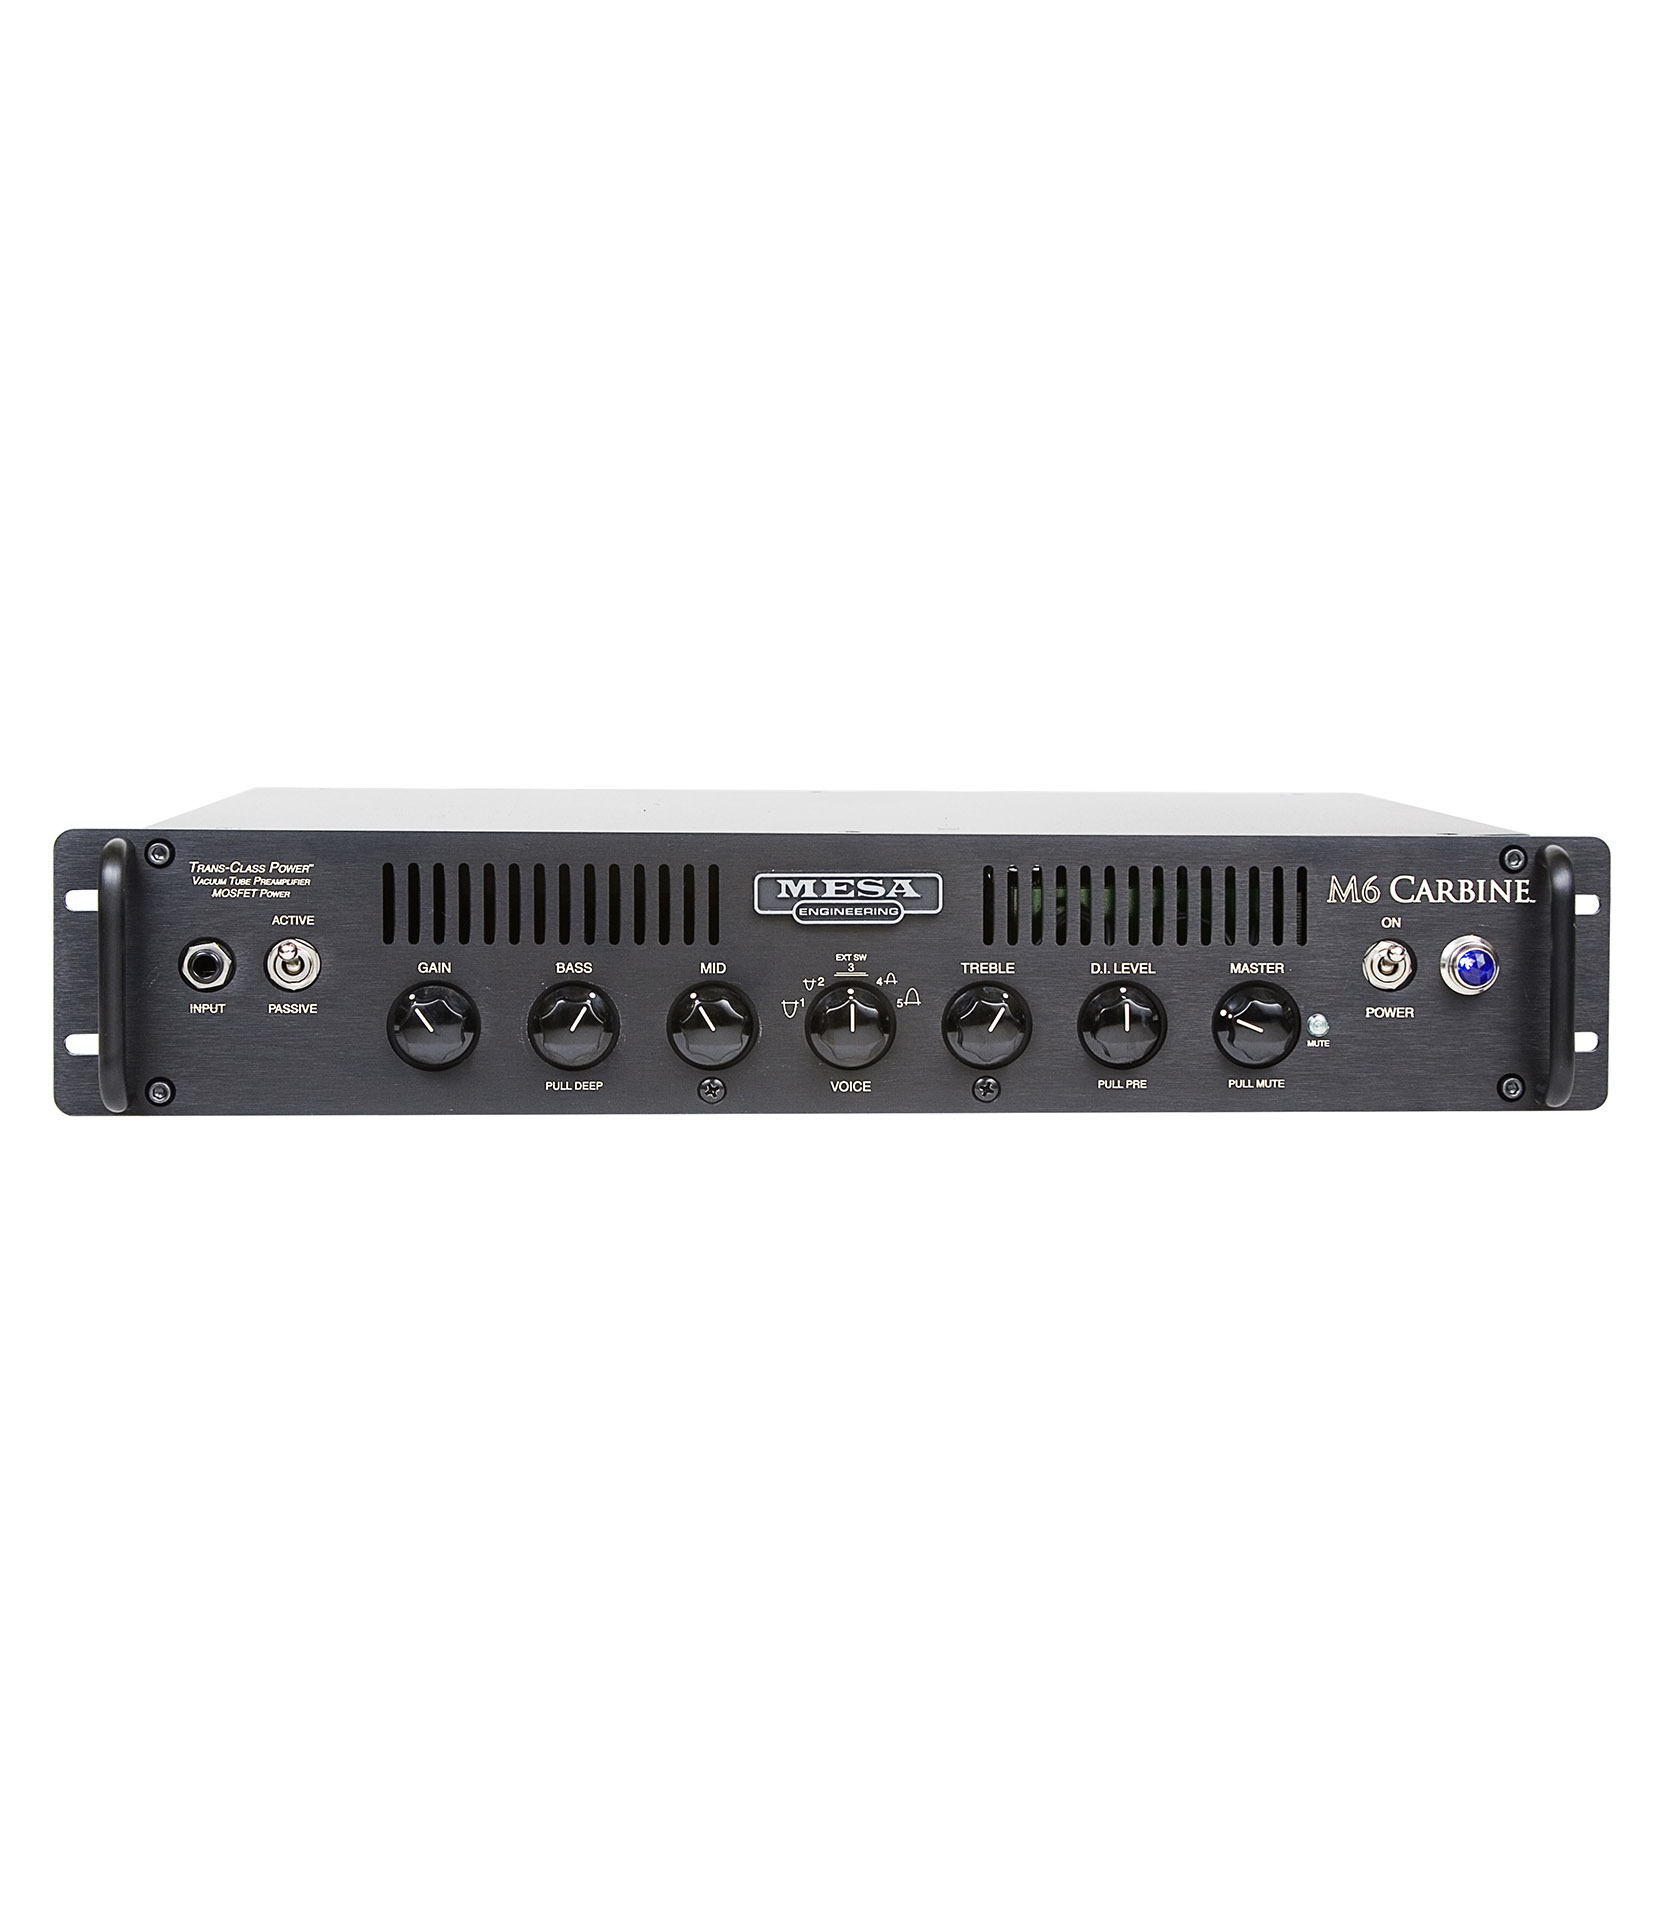 Buy mesaboogie M9 Carbine Rackmount Head Melody House